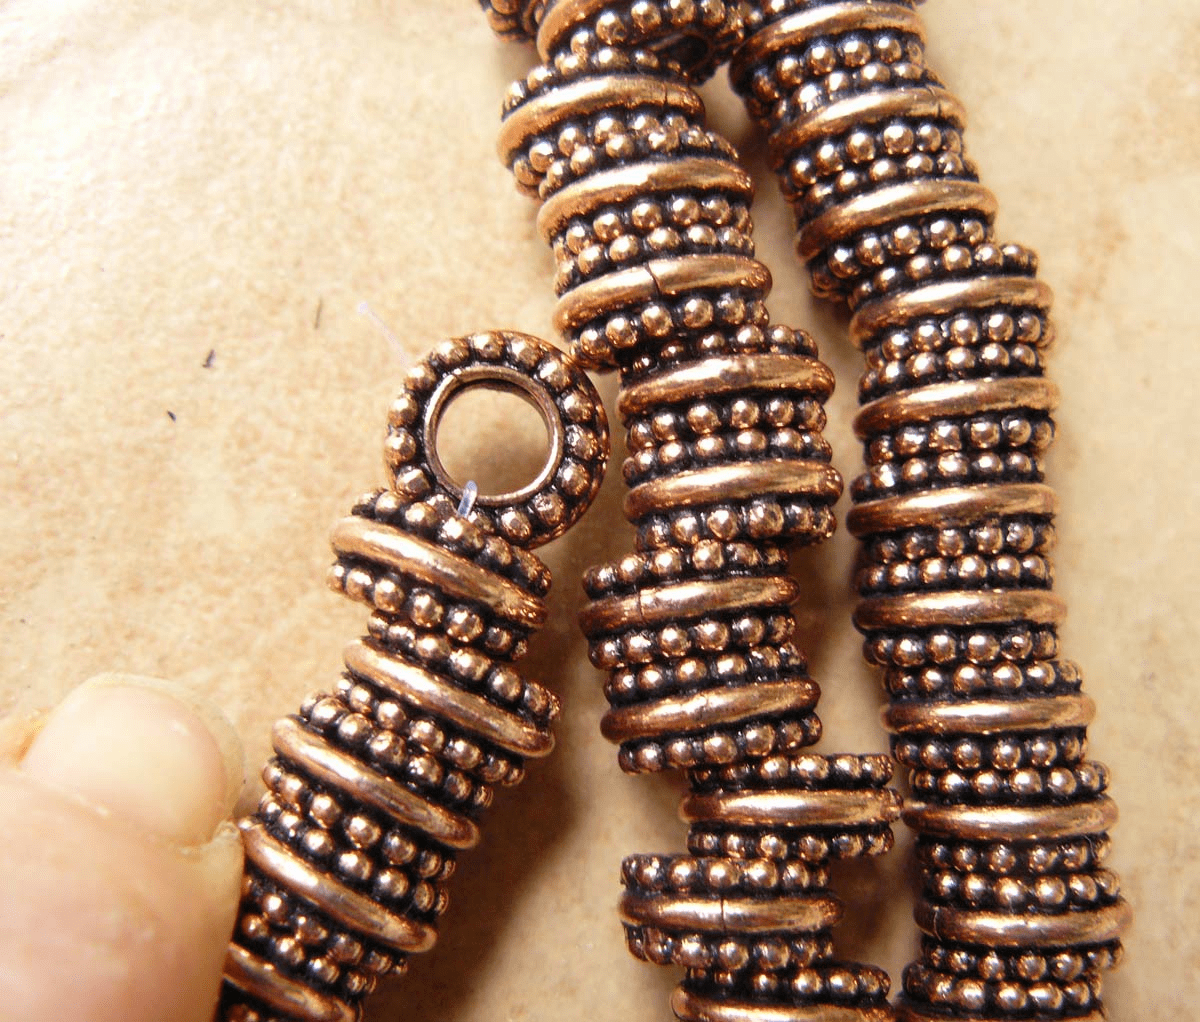 Copper large hole bead 12x6mm with 5.85mm hole 35 beads